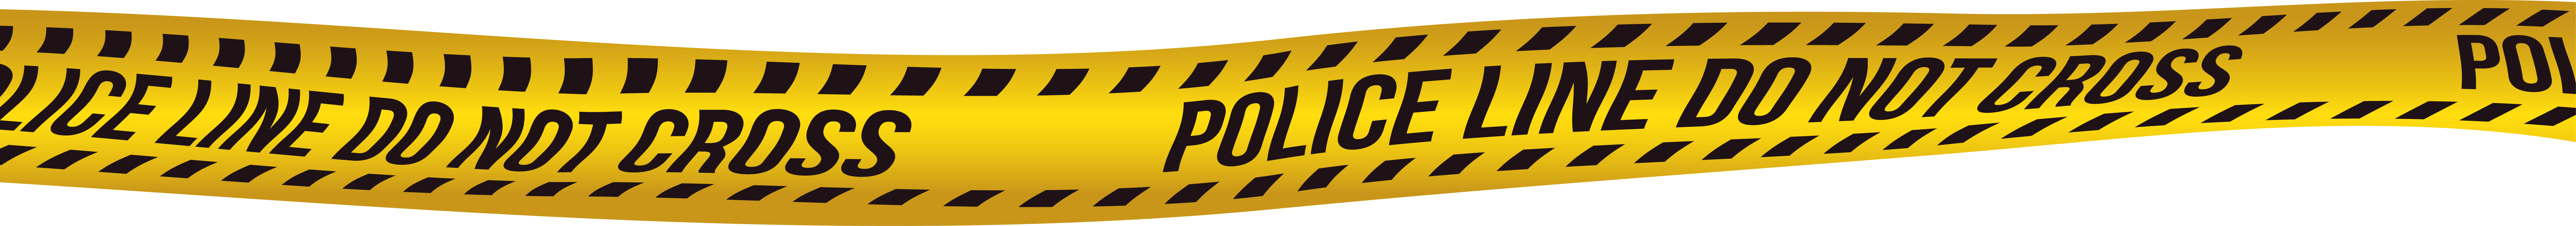 Police Line Do Not Cross Png - Do Not Cross Police Line PNG Clip Art Image​ | Gallery ...